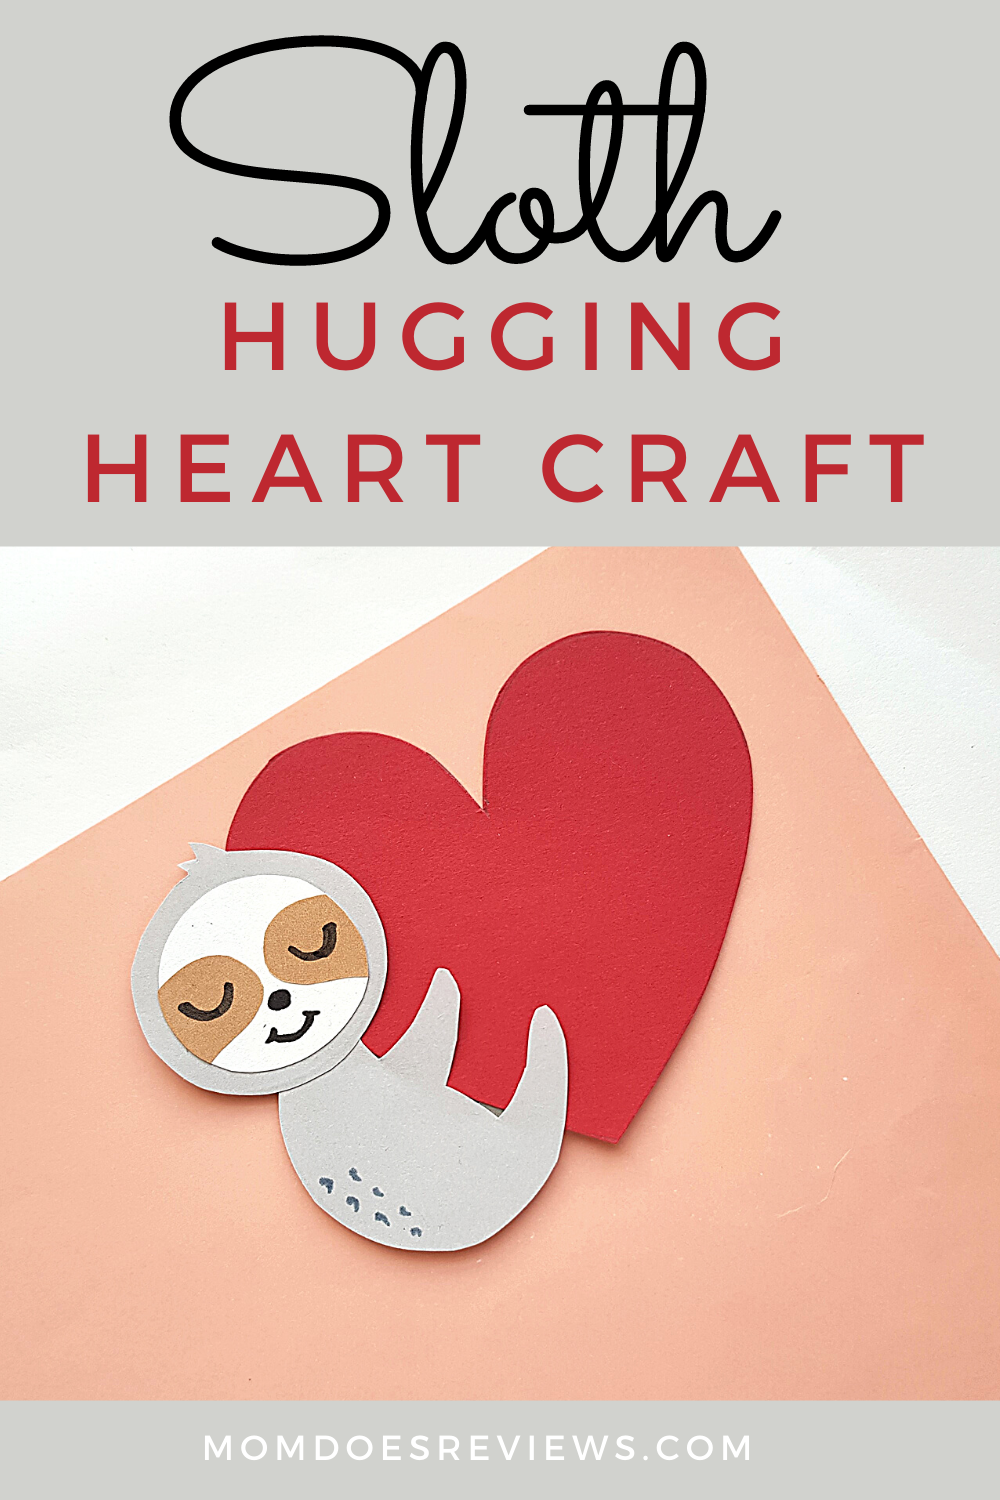 The Cutest Sloth Hugging Heart Craft